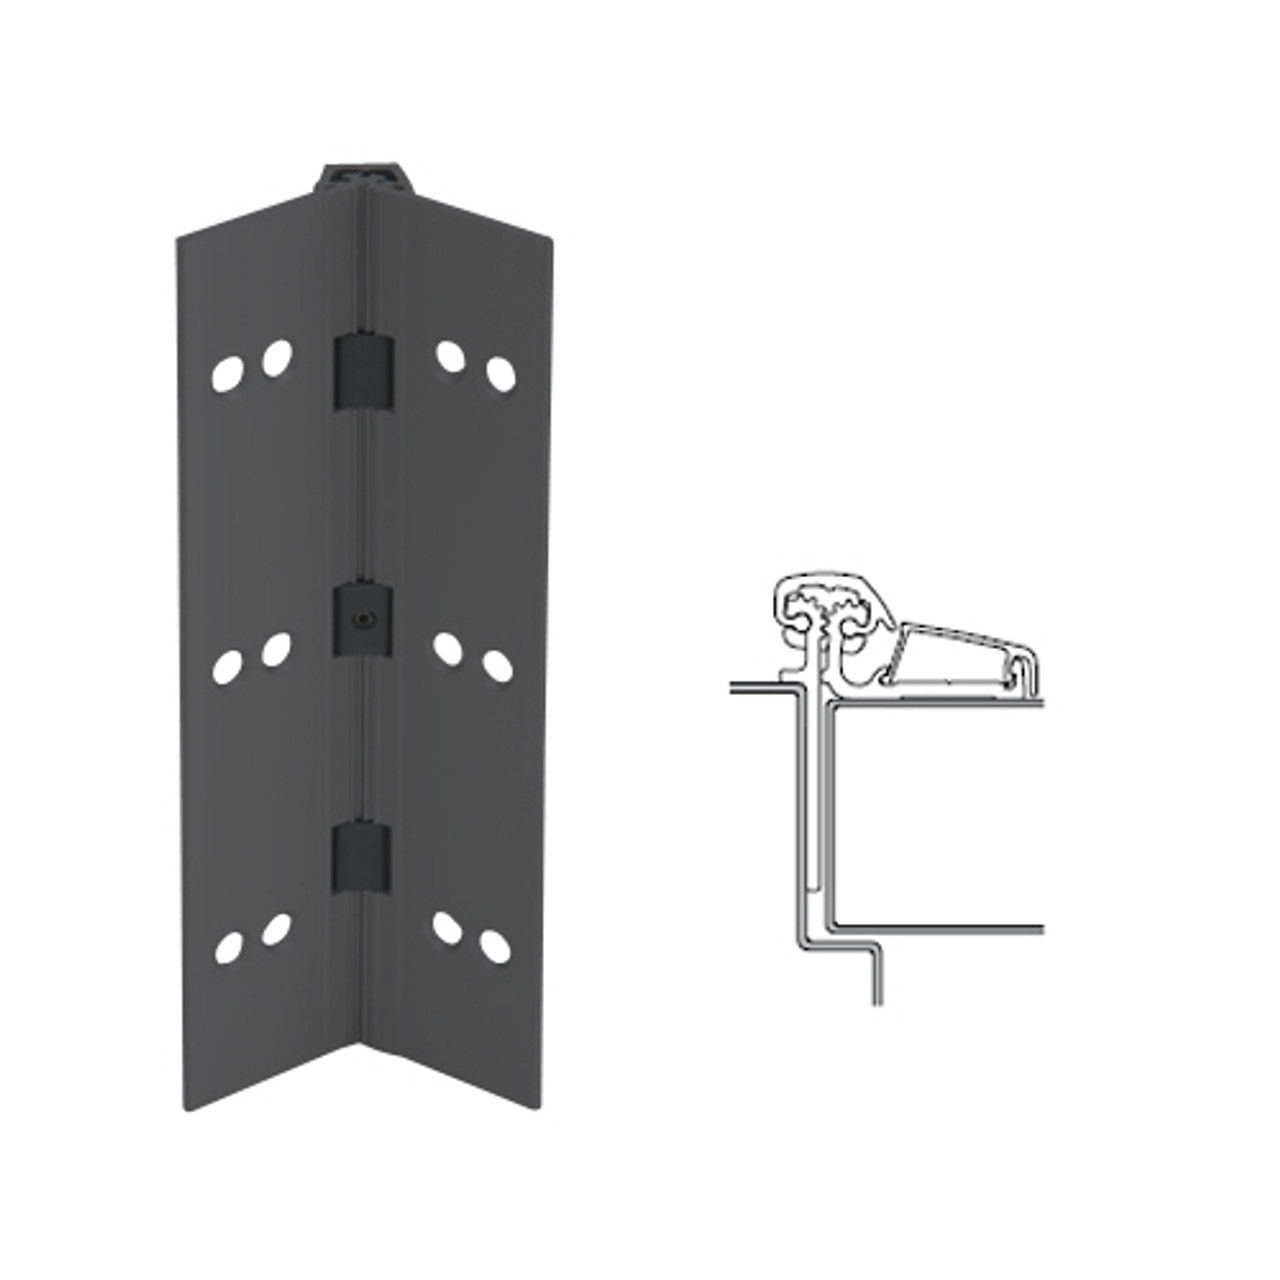 053XY-315AN-85-TFWD IVES Adjustable Half Surface Continuous Geared Hinges with Thread Forming Screws in Anodized Black